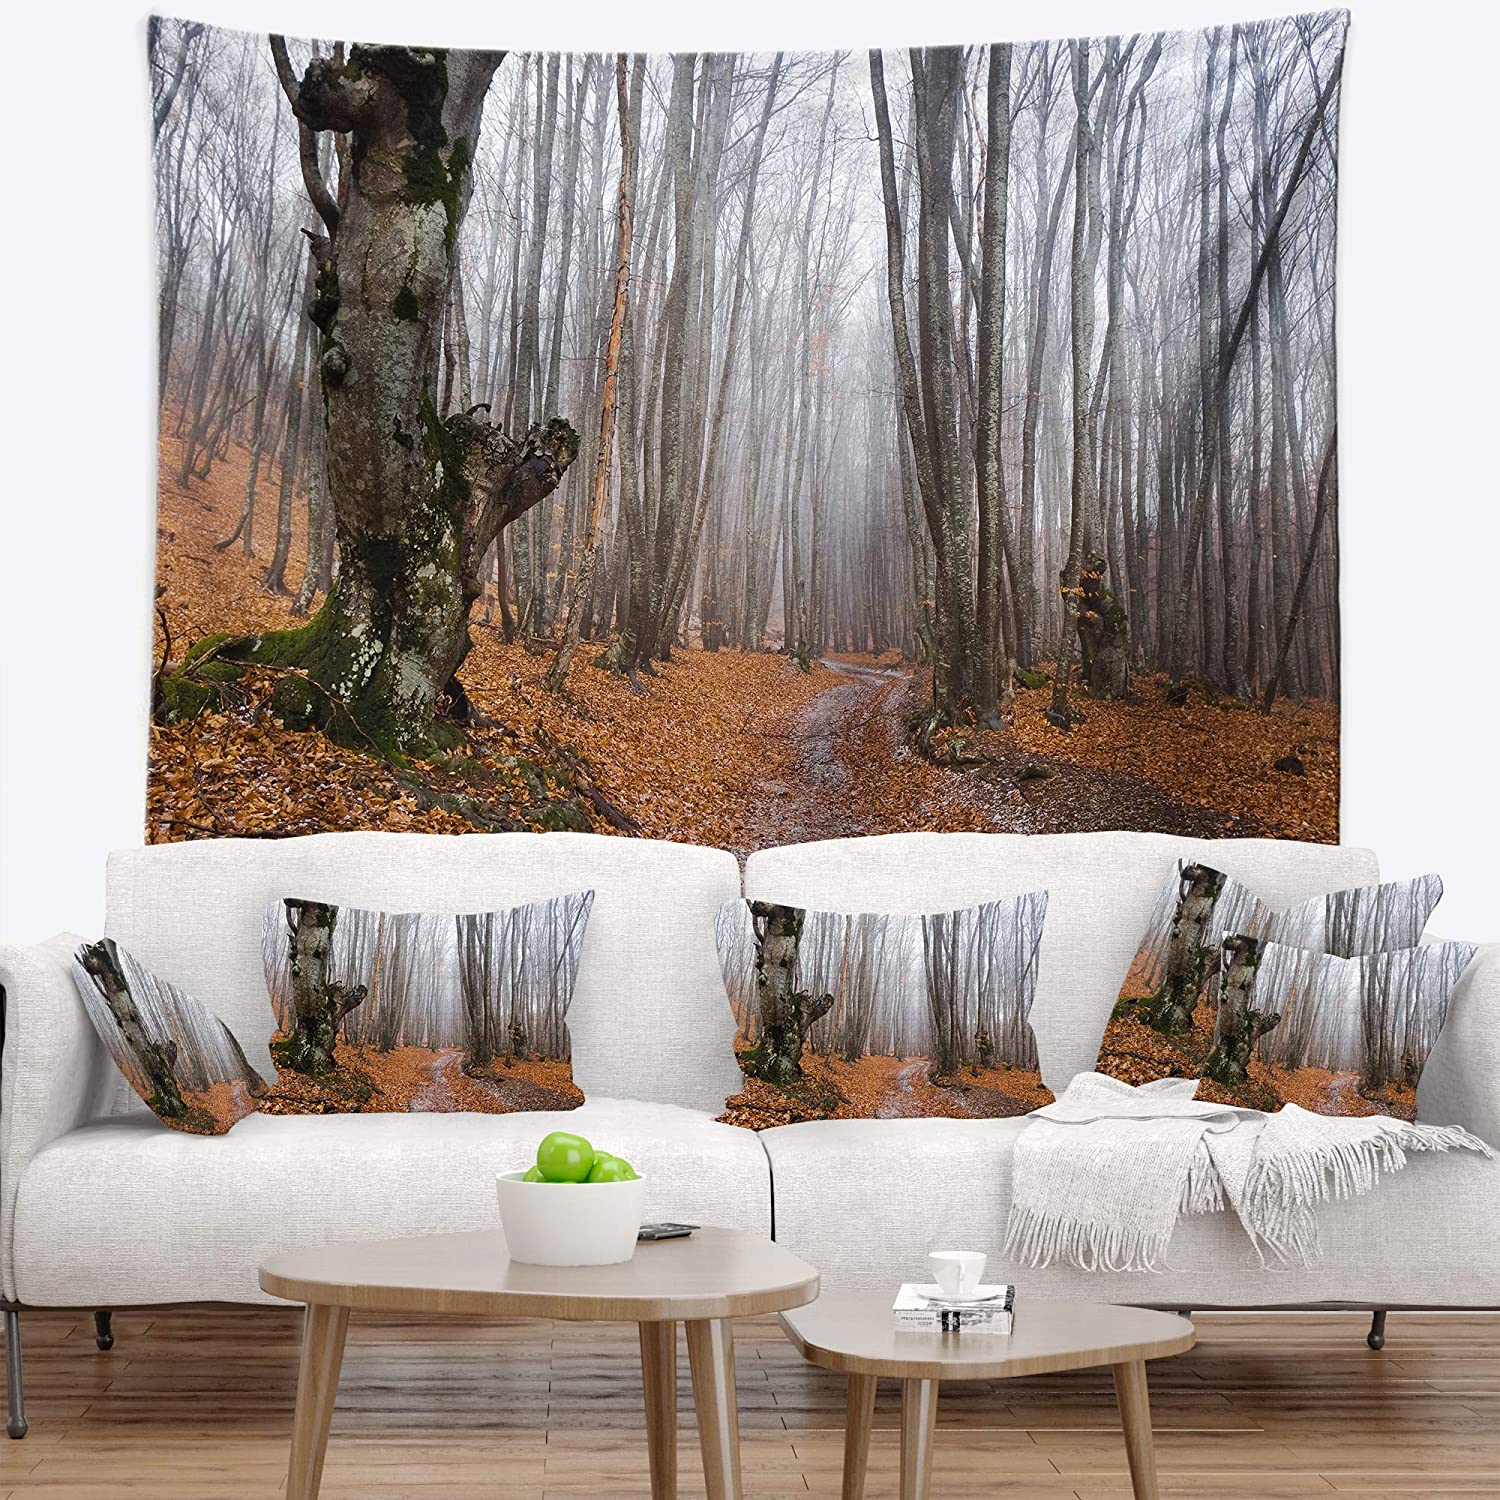 x 50 in Created On Lightweight Polyester Fabric Designart TAP13948-60-50  Road Covered by Fallen Leaves Modern Forest Blanket D/écor Art for Home and Office Wall Tapestry Large 60 in